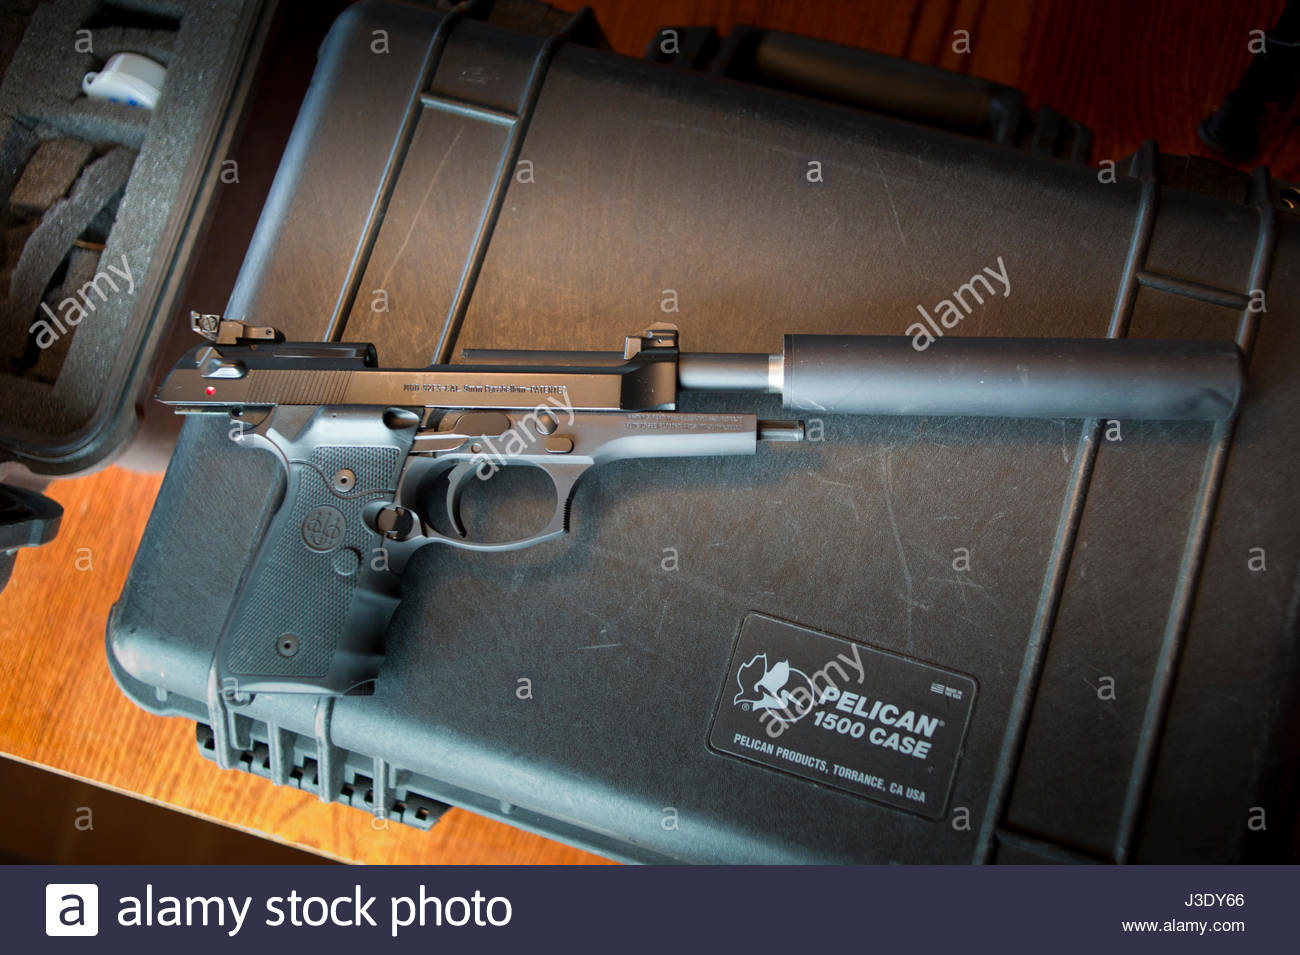 Beretta Model 92FS 9mm Parabellum Pistol With Sound Suppressor Attached To Barrel Laying On Hard Case USA